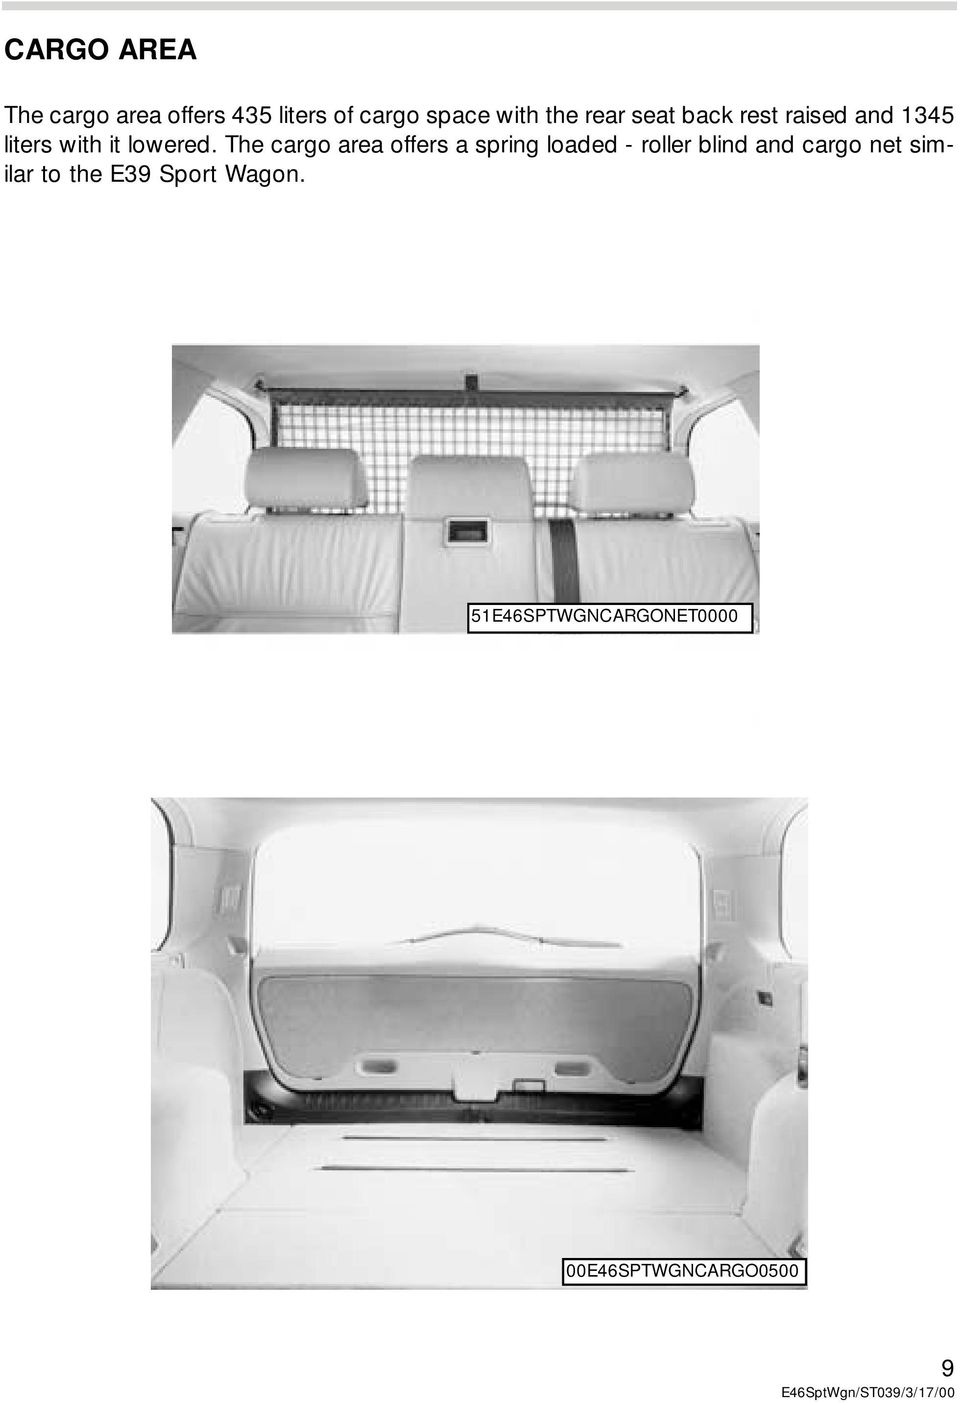 The cargo area offers a spring loaded - roller blind and cargo net